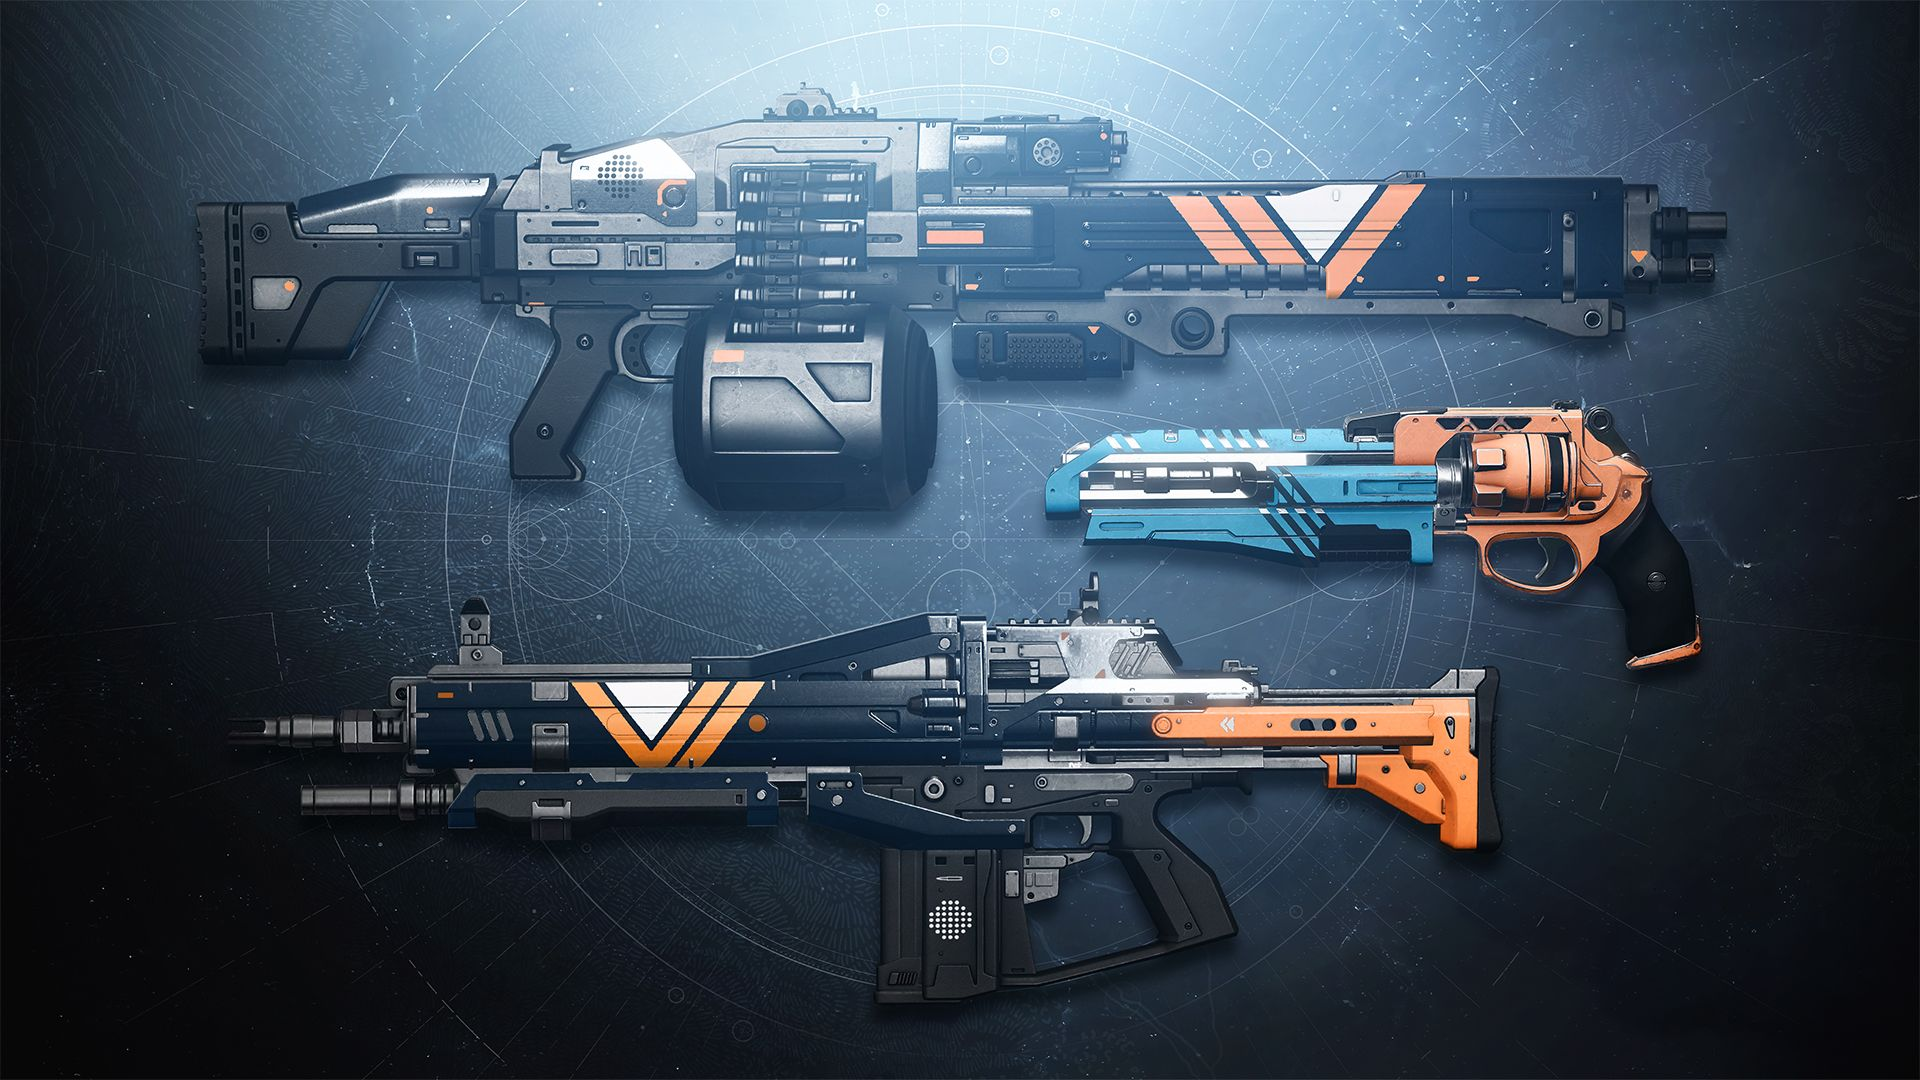 Nightfall Weapons from Destiny 2: Palindrome, The Swarm, Shadow Price.